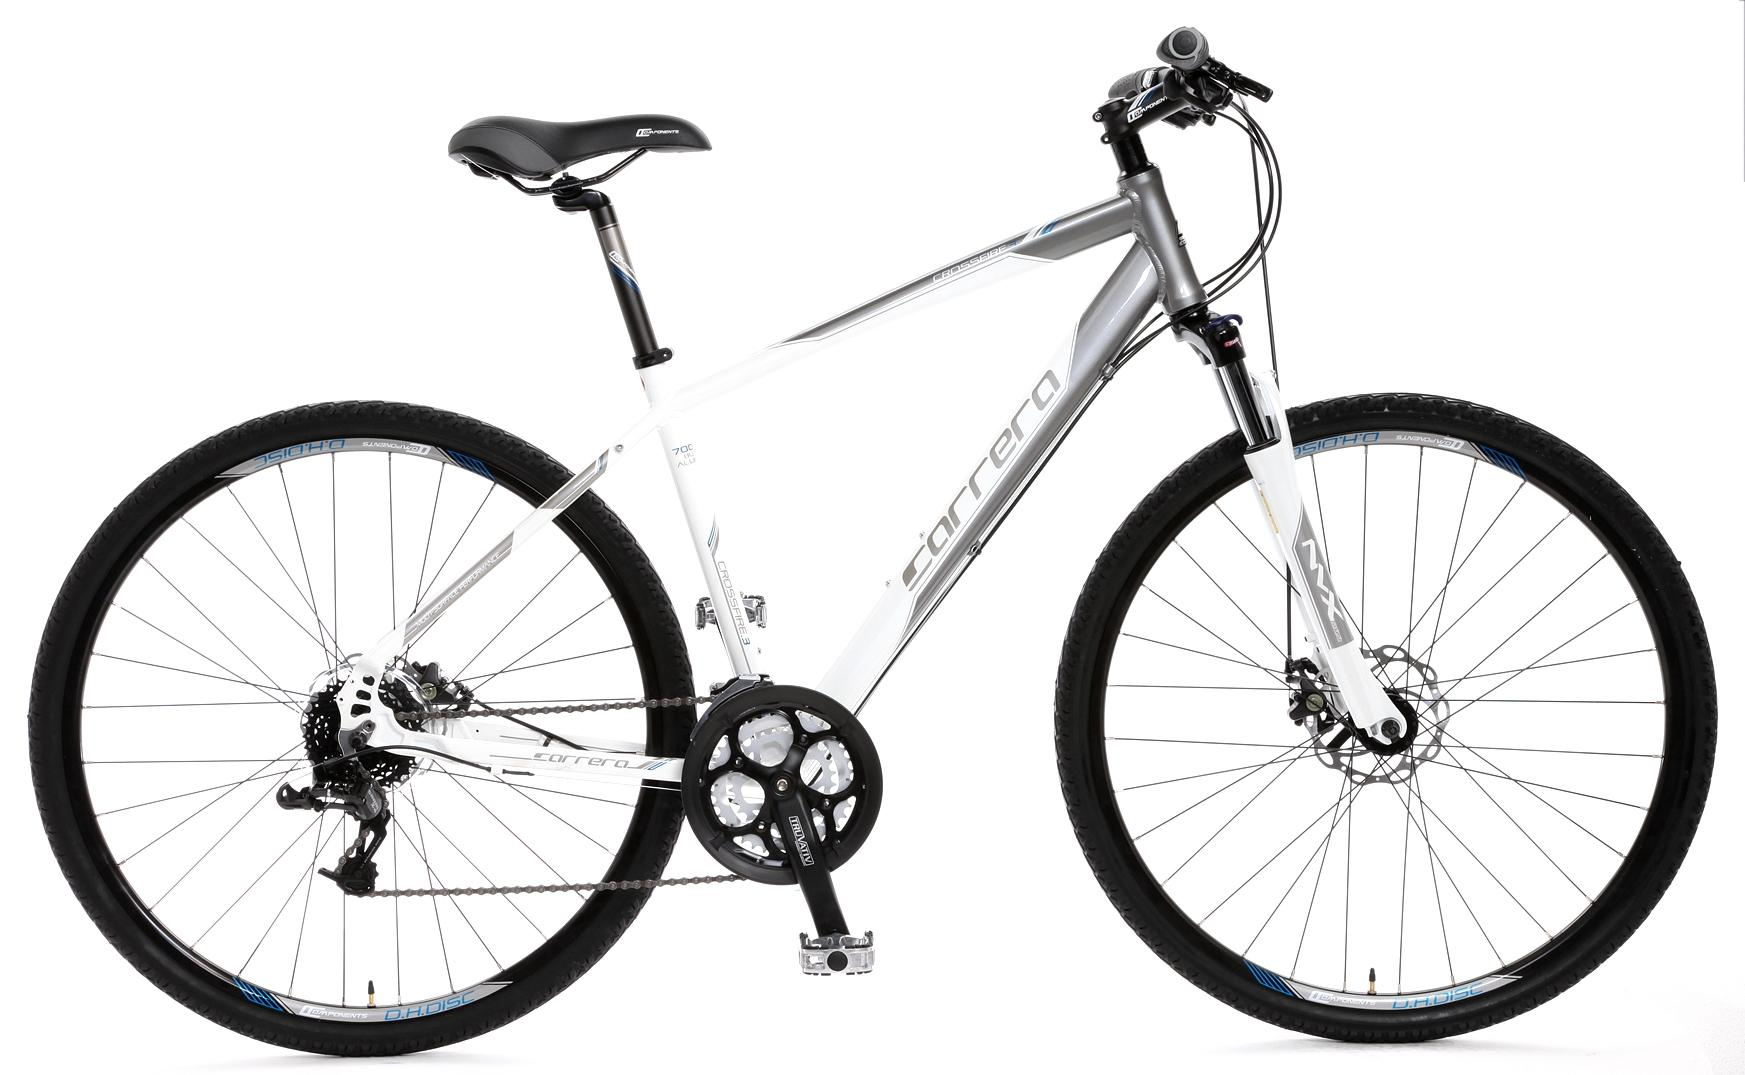 Details about Carrera Crossfire 3 Mens Hybrid Bike 19